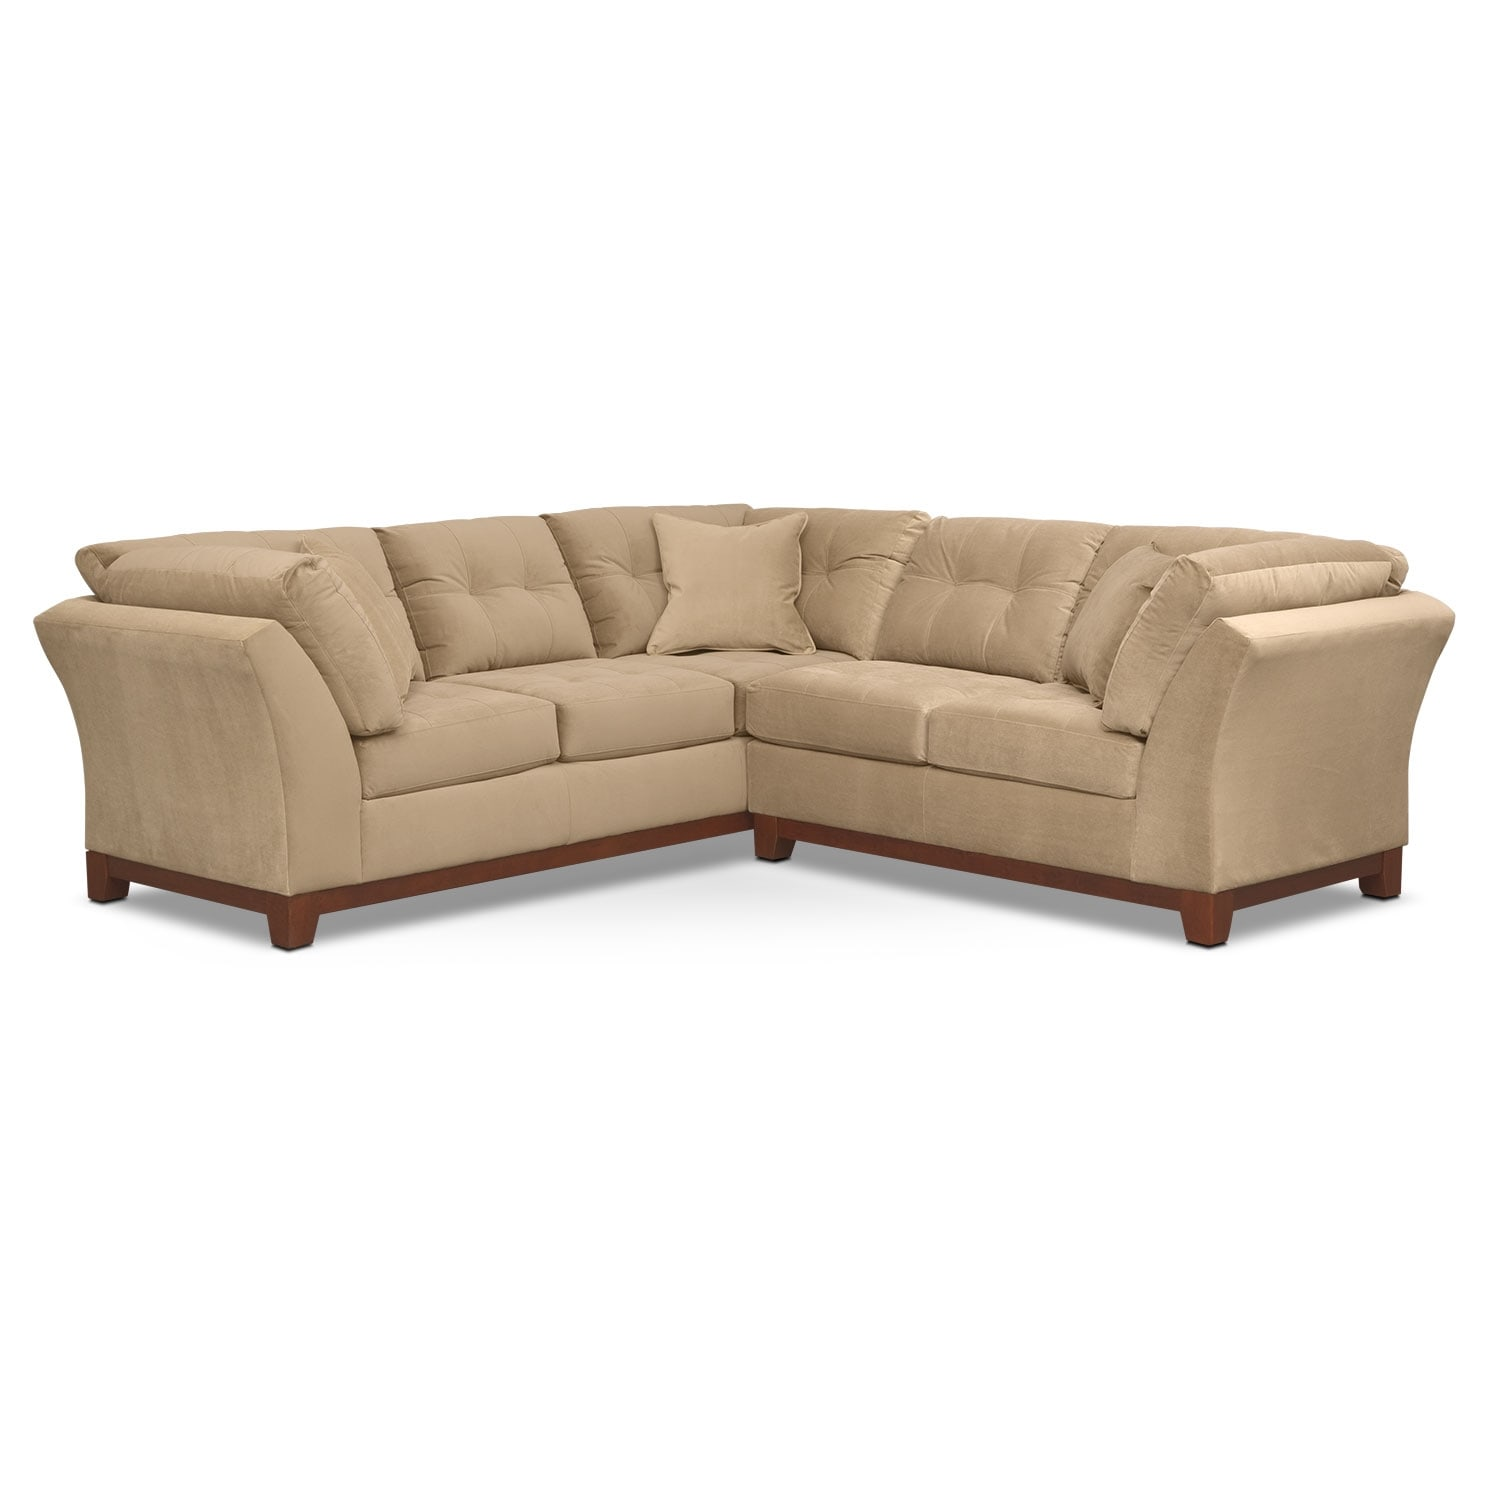 """Living Room Furniture - Solace 2-Piece Left-Facing 105"""" Sofa Sectional - Cocoa"""